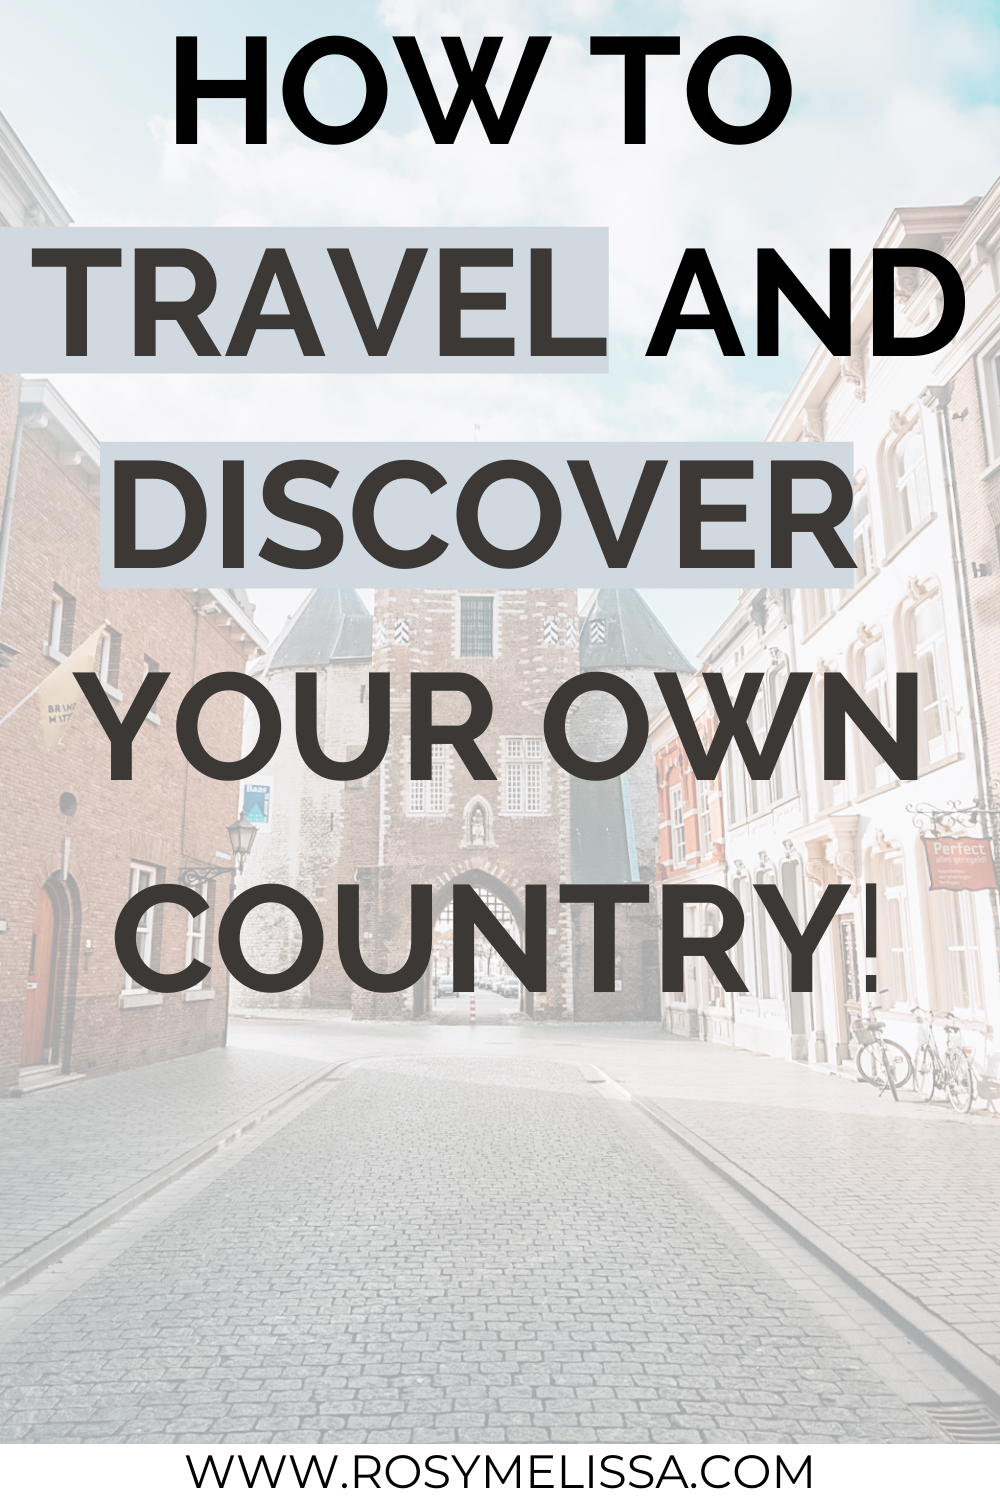 how to travel and discover your own country, rediscover your hometown, city or region